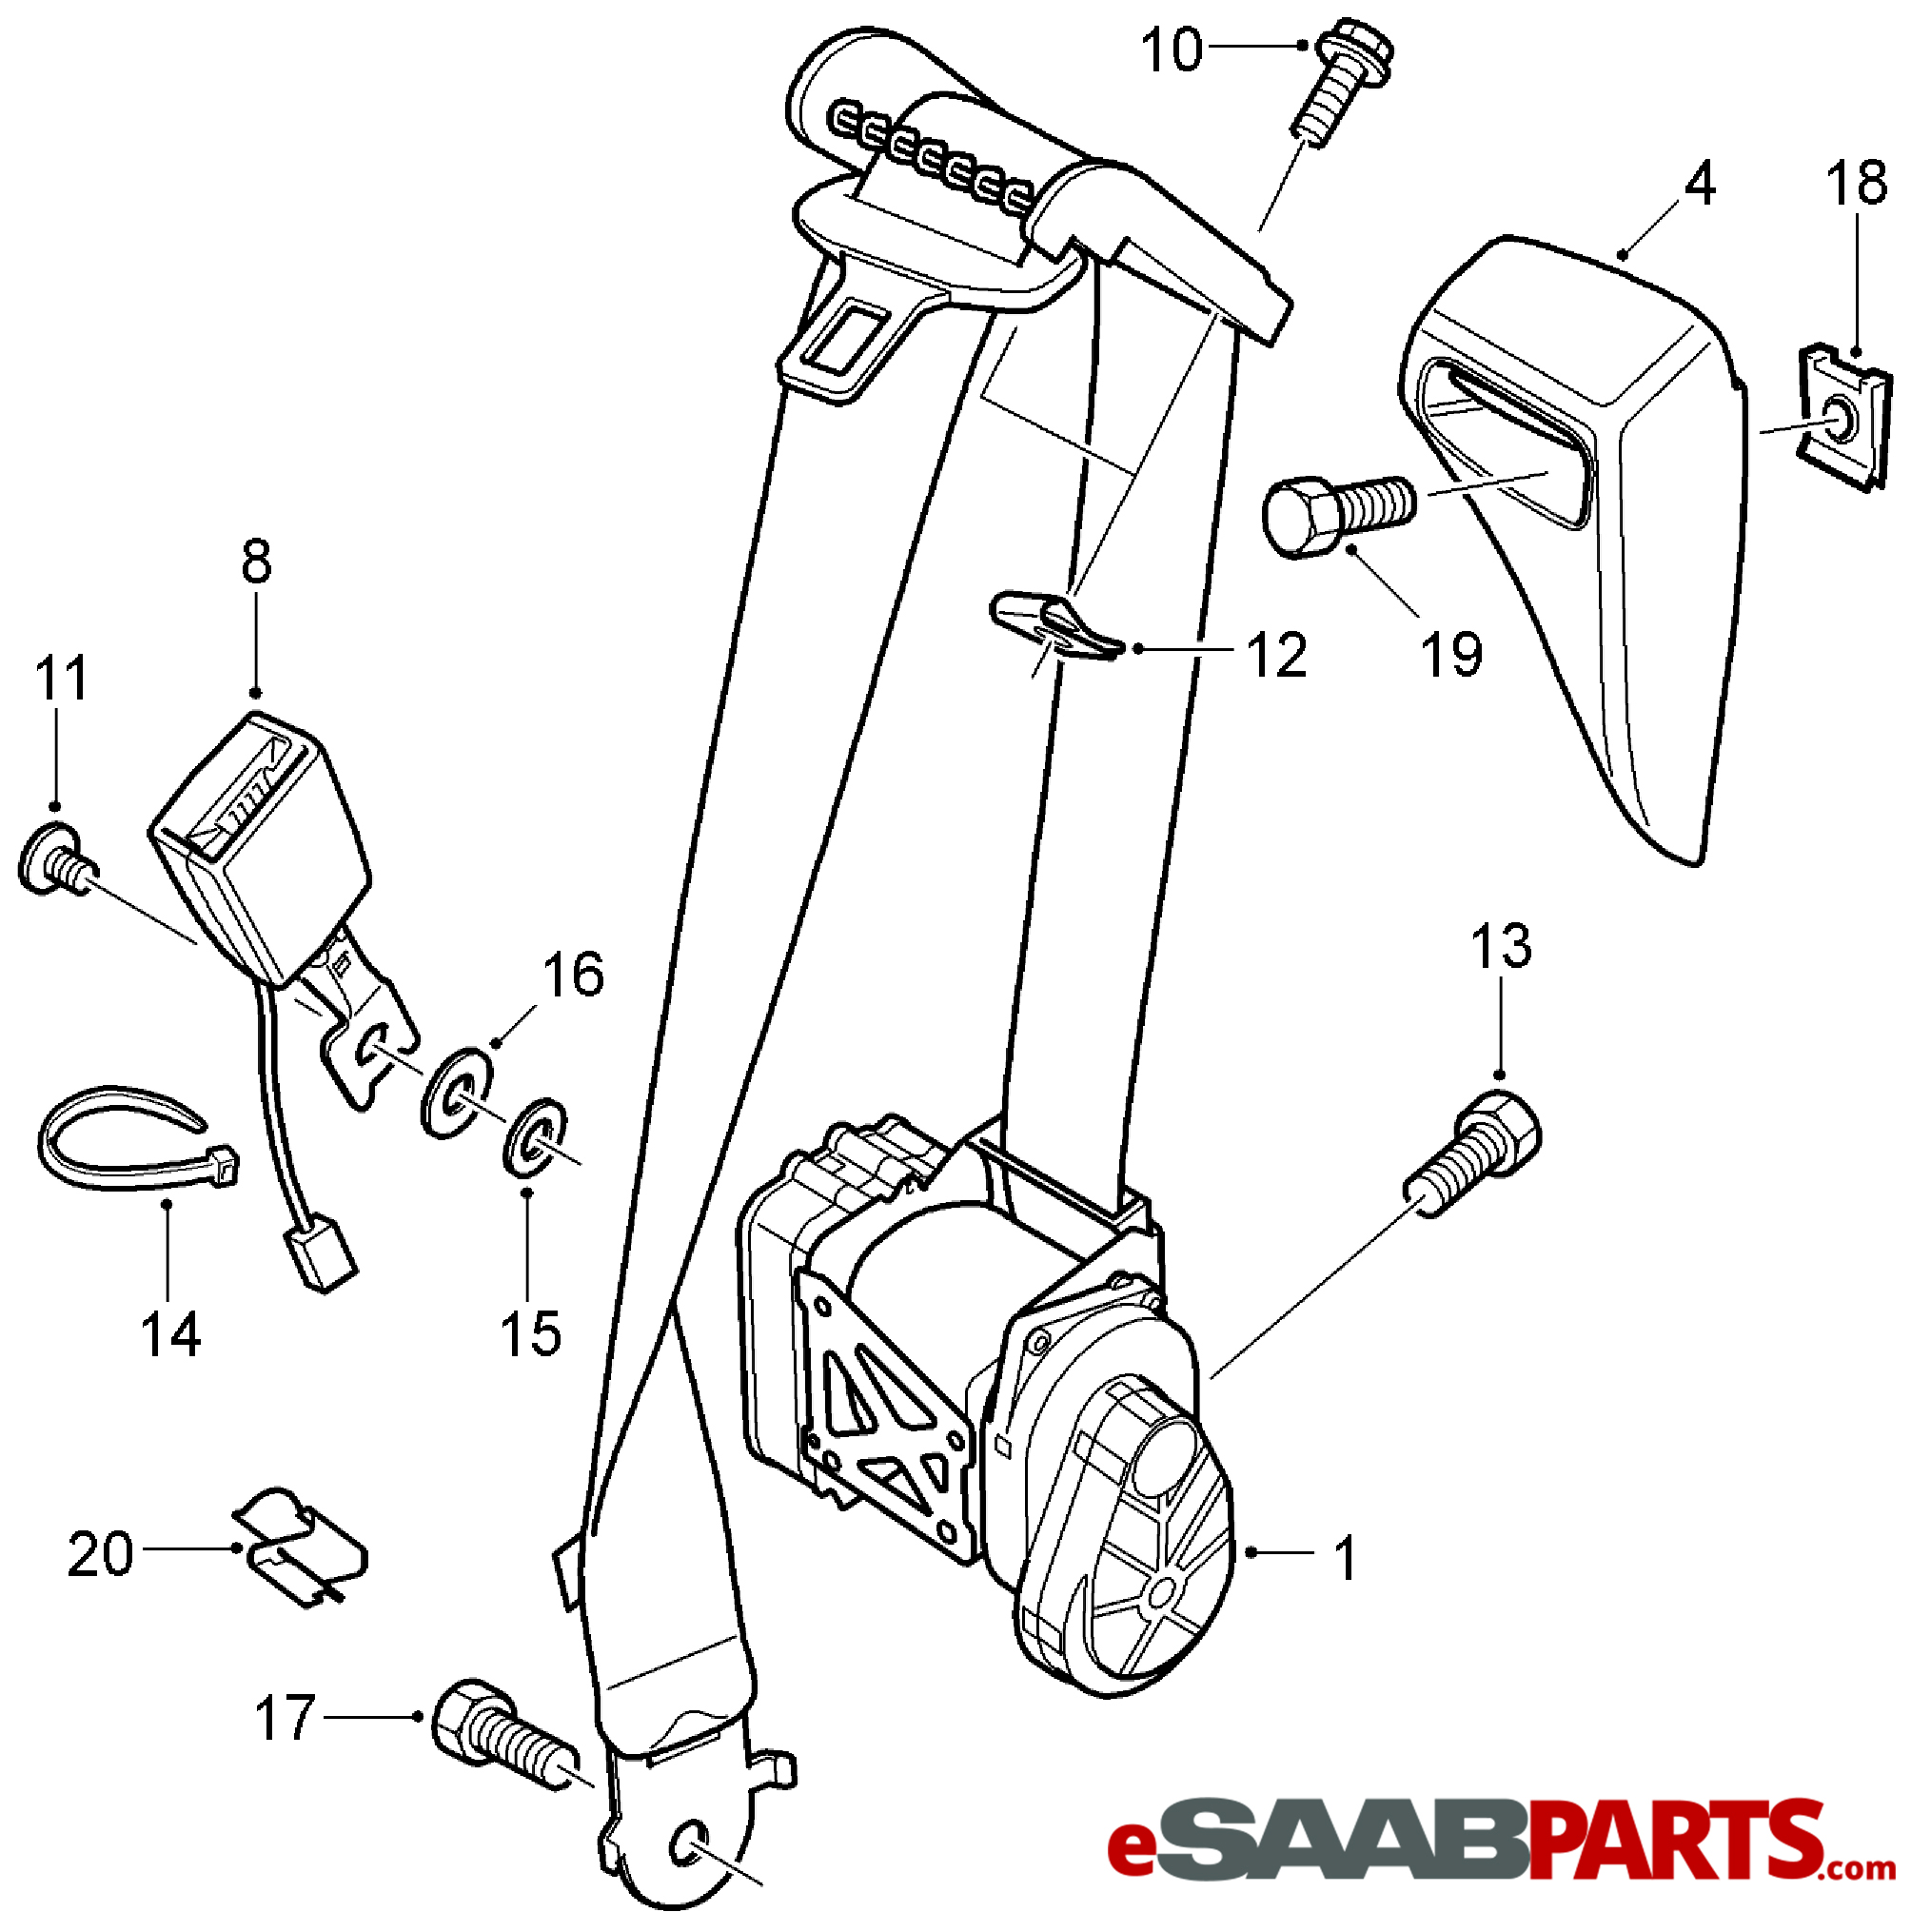 saab 9 3 convertible top parts